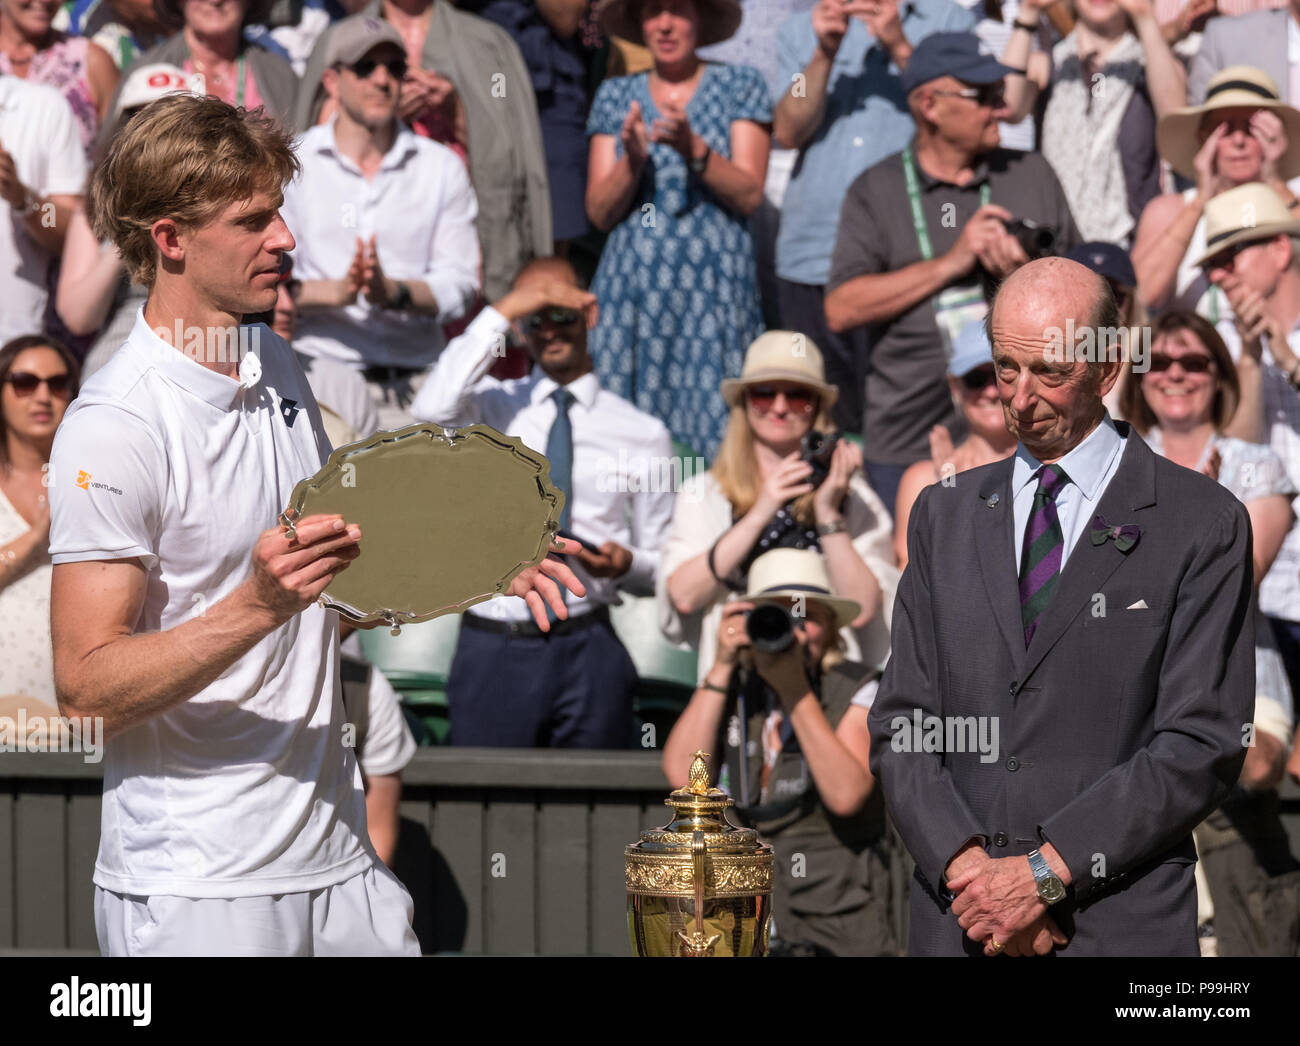 Wimbledon London, July 2018. Kevin Anderson holds his plate on centre court as runner up in the Wimbledon mens finals. The Duke of Kent looks on. - Stock Image